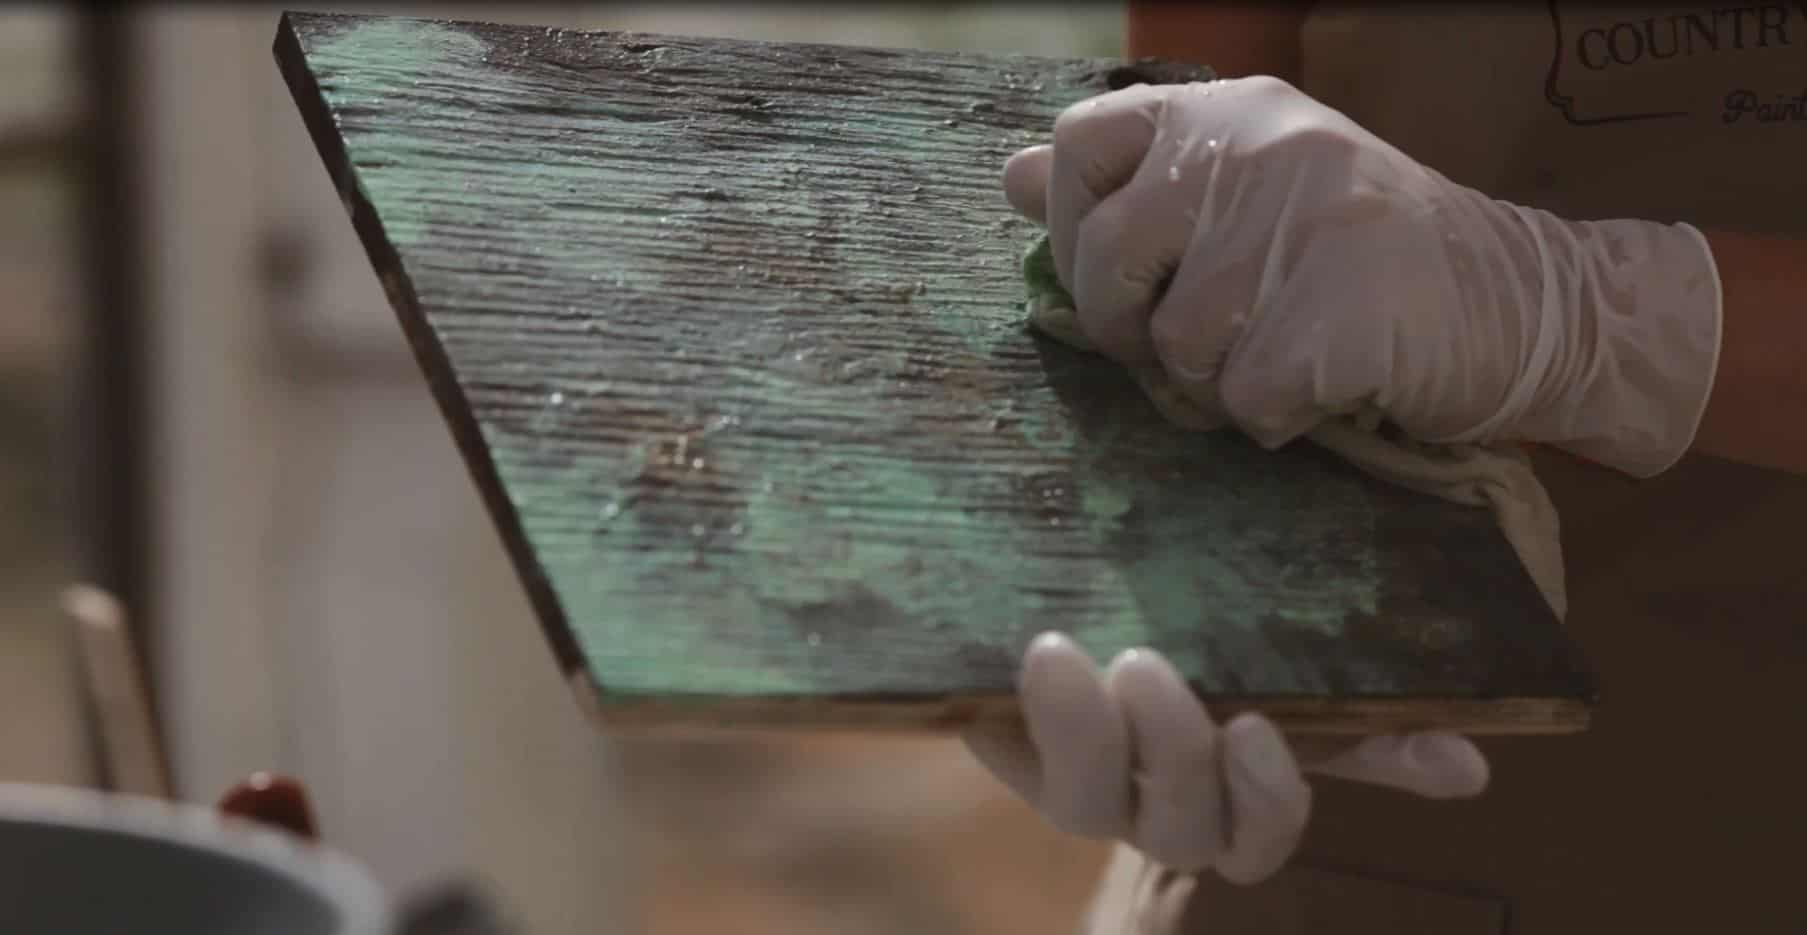 How To Create a Faux Oxidized Copper Finish with Country Chic Paint #DIY #furniturepaint #paintedfurniture #homedecor #howto #tutorial #video #techniques #oxidizedcopper #copper #fauxfinish #metallic - blog.countrychicpaint.com